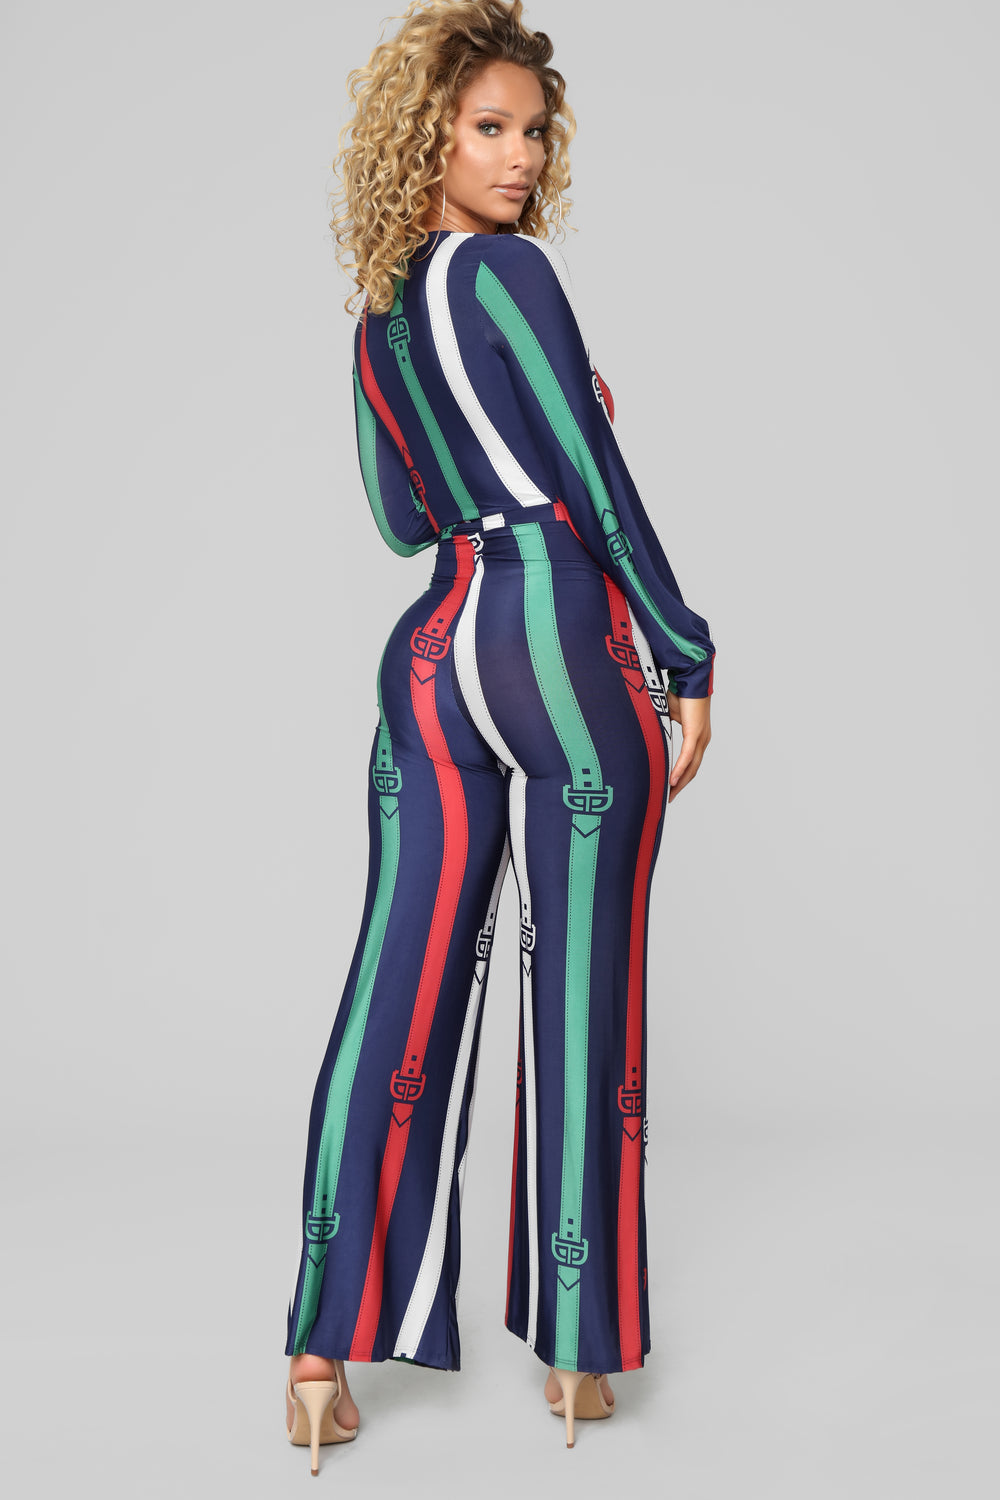 Belt It Out Jumpsuit - Navy/Multi